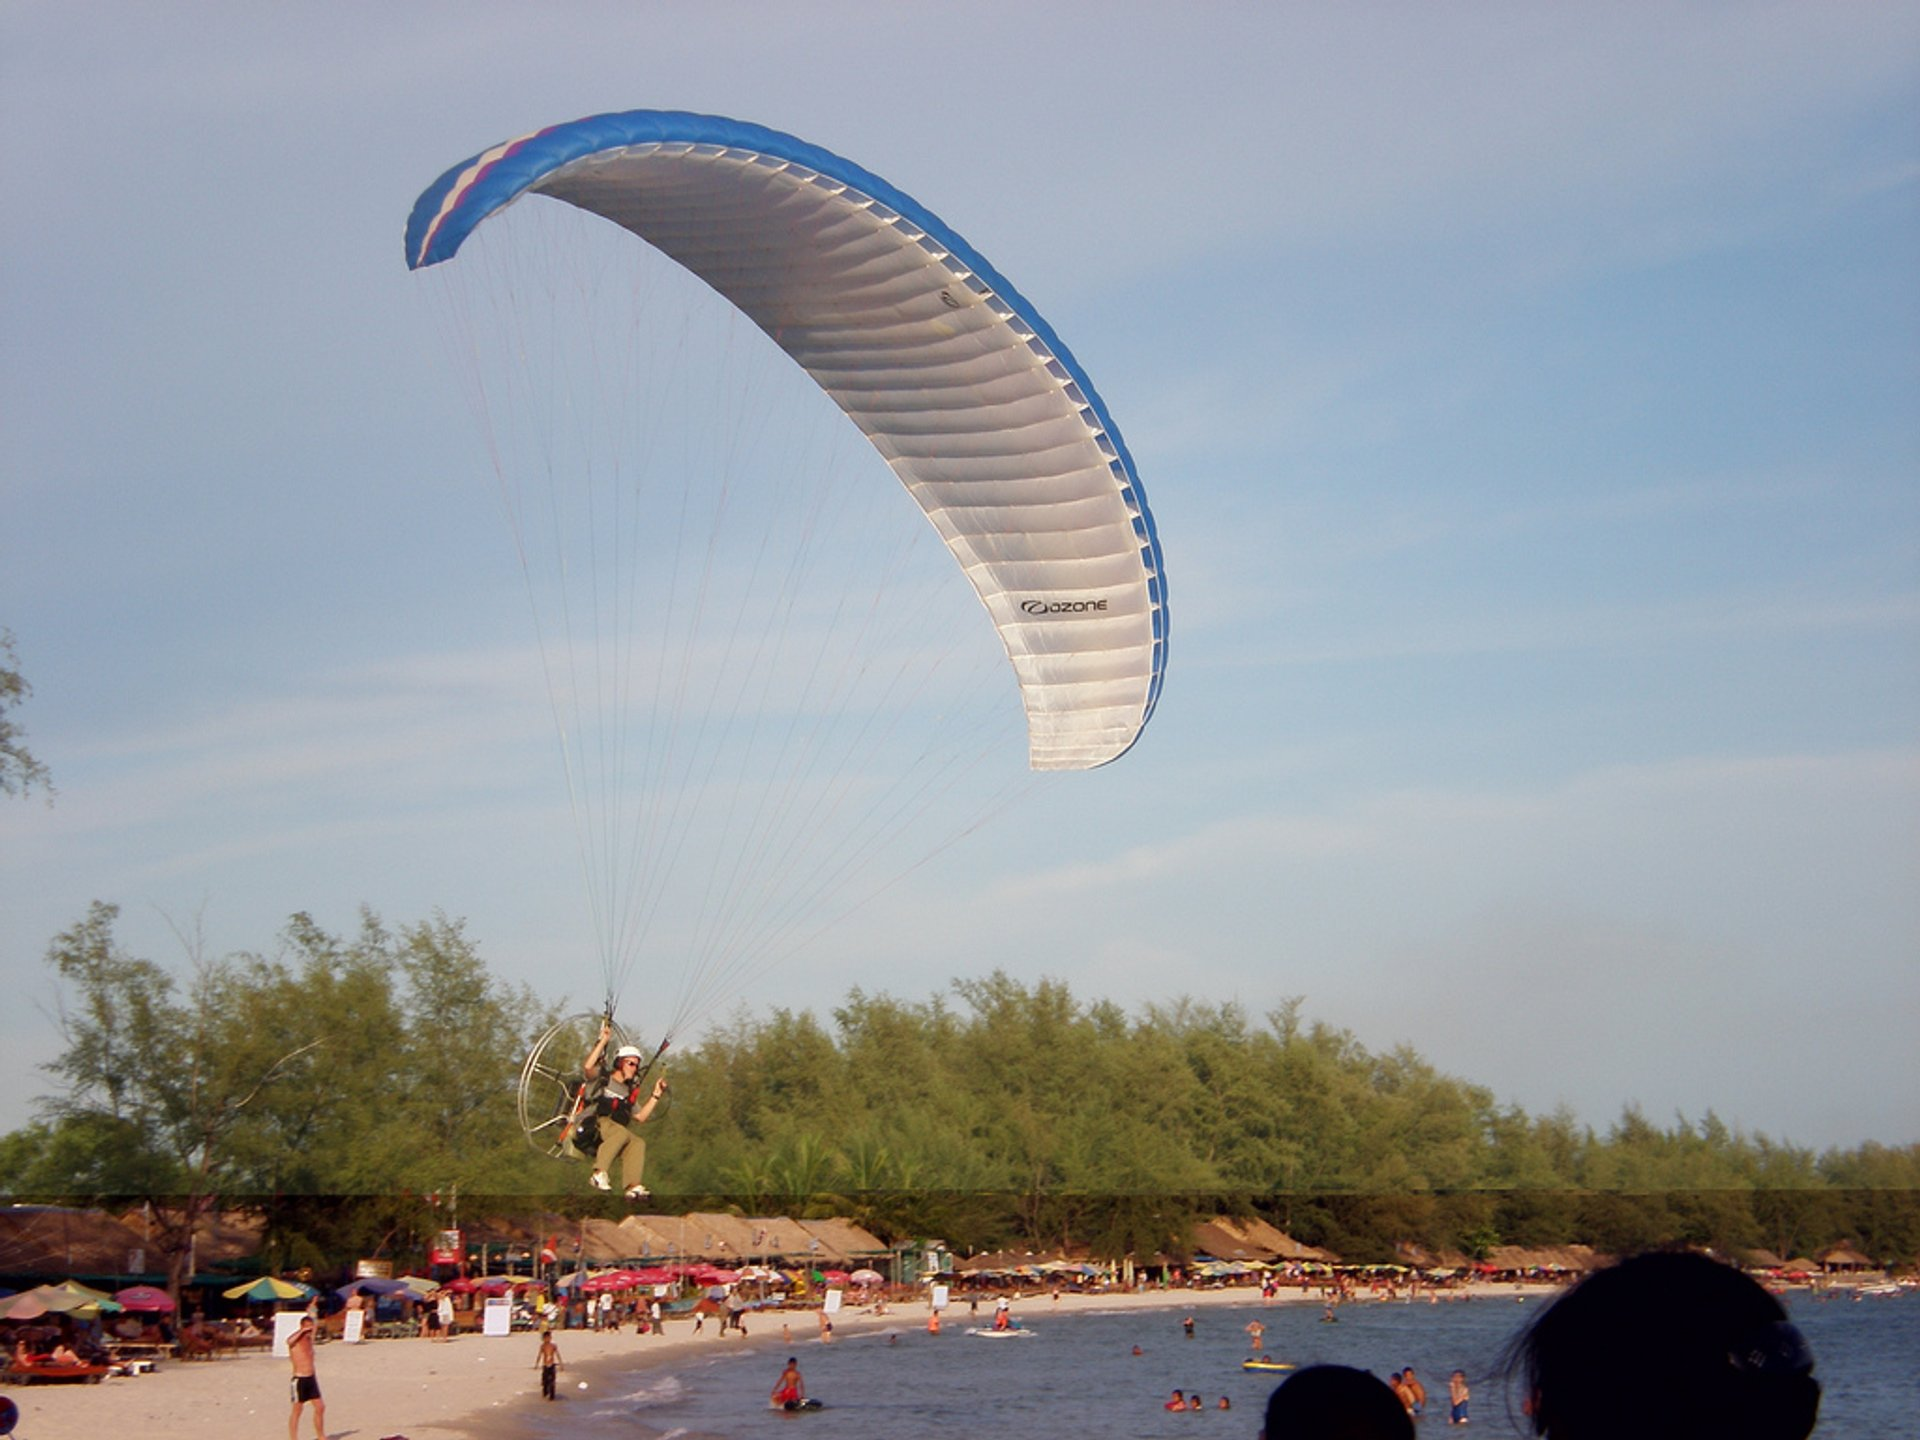 Paragliding in Sihanoukville in Cambodia 2020 - Best Time